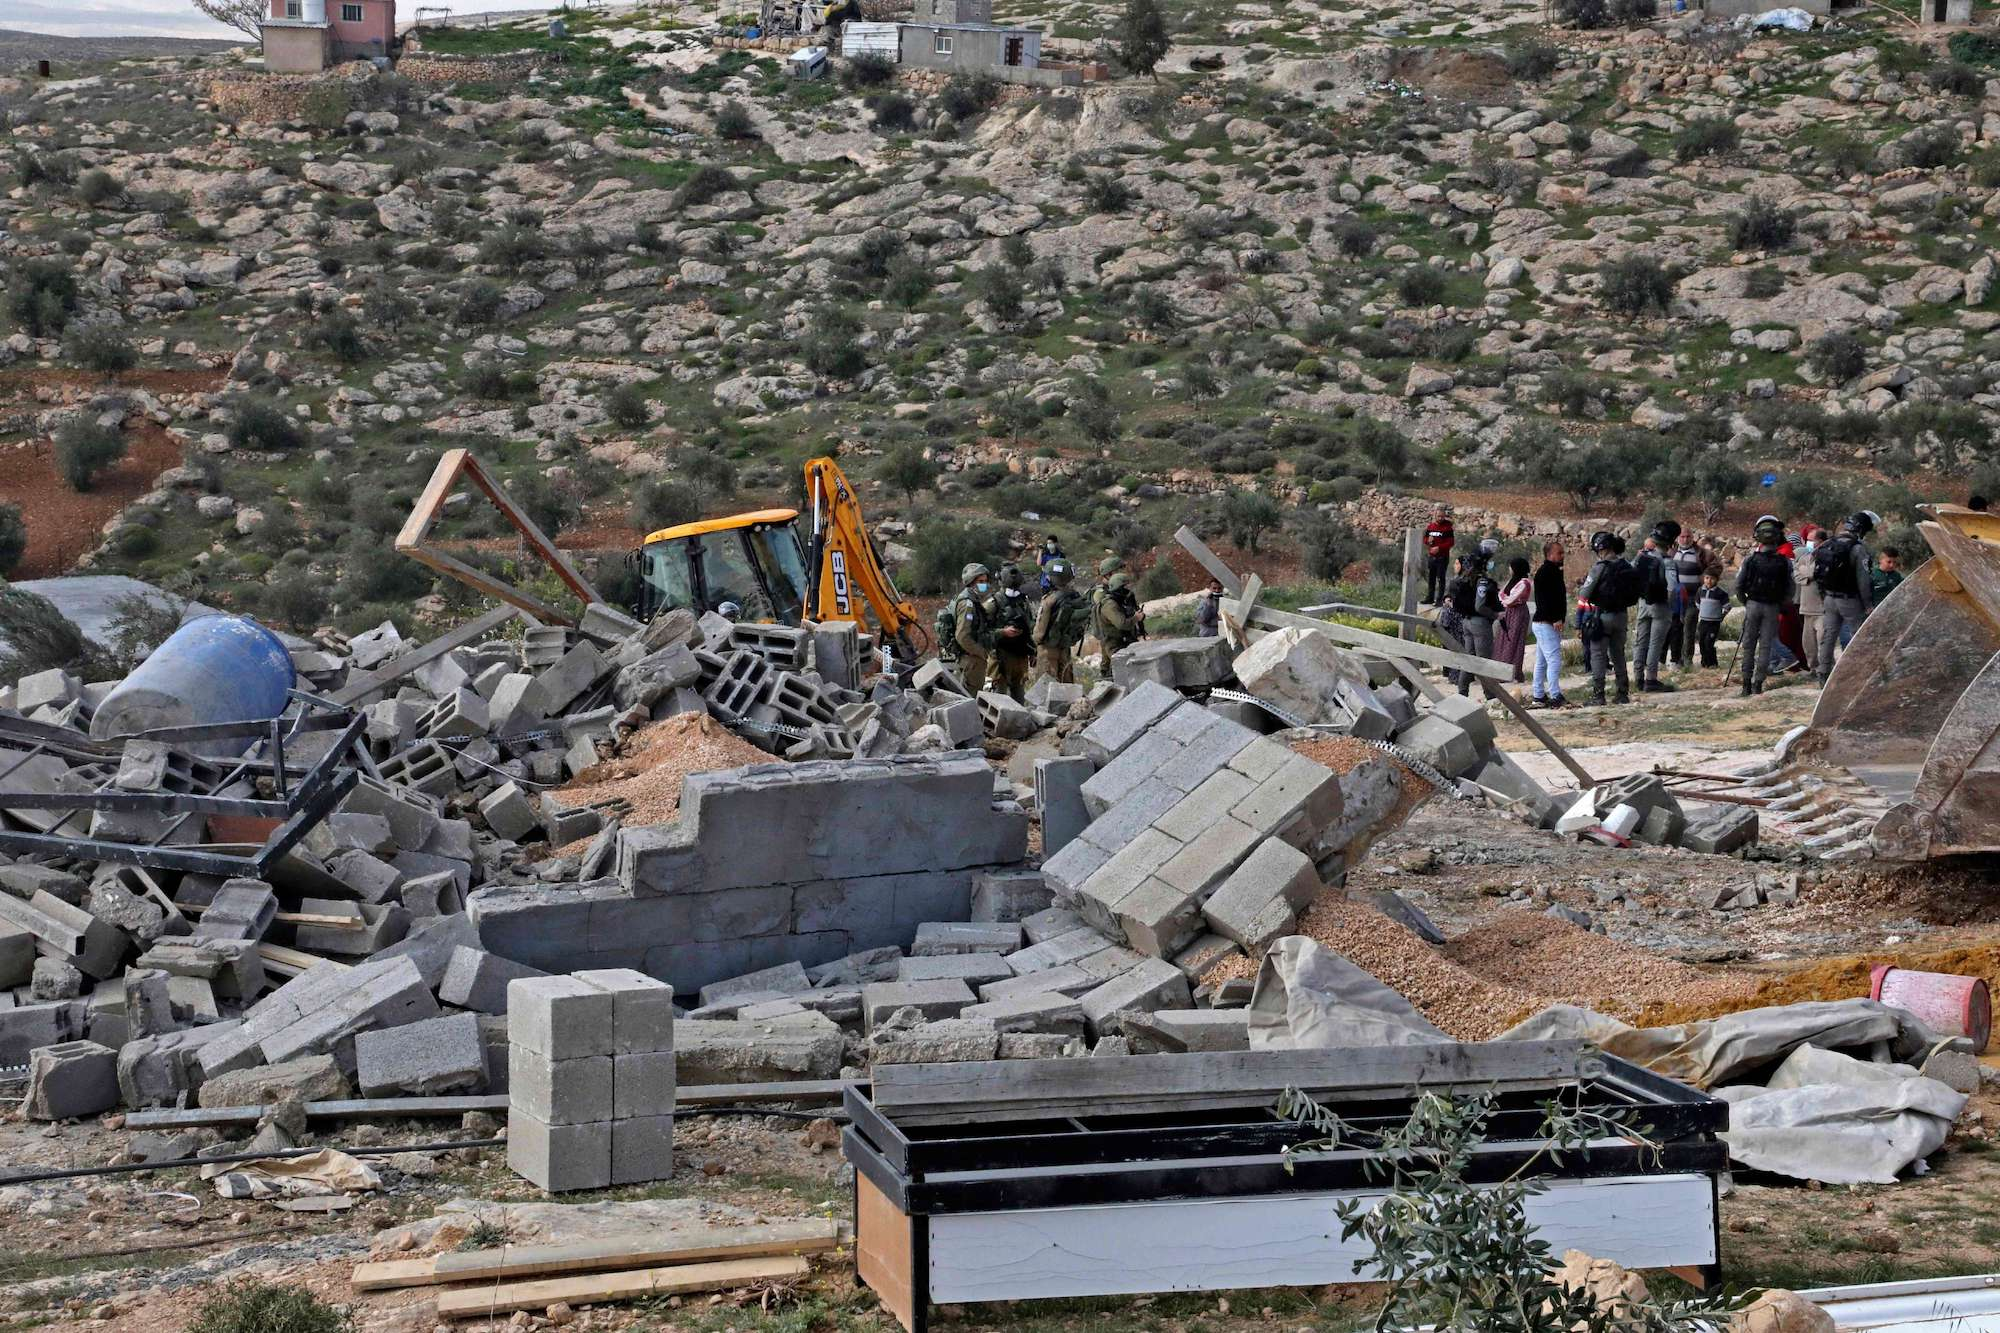 Facilities Provided by Isr. Army to 'Jewish National Fund' for Robbing Palestinian Land